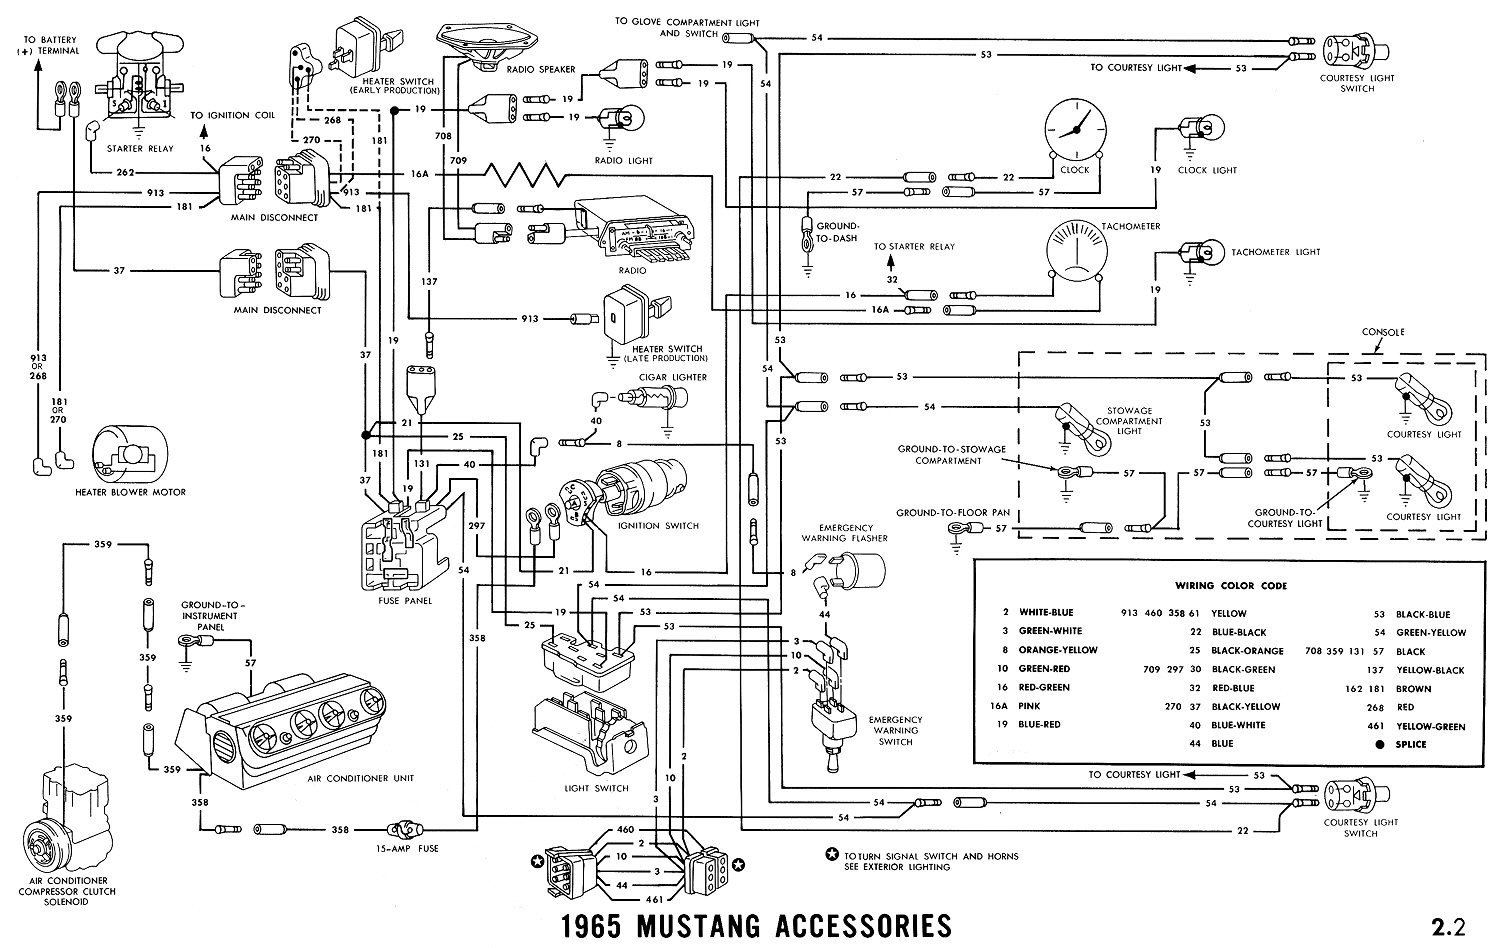 1965i 1965 mustang wiring diagrams average joe restoration 1997 ford mustang wiring diagram at honlapkeszites.co